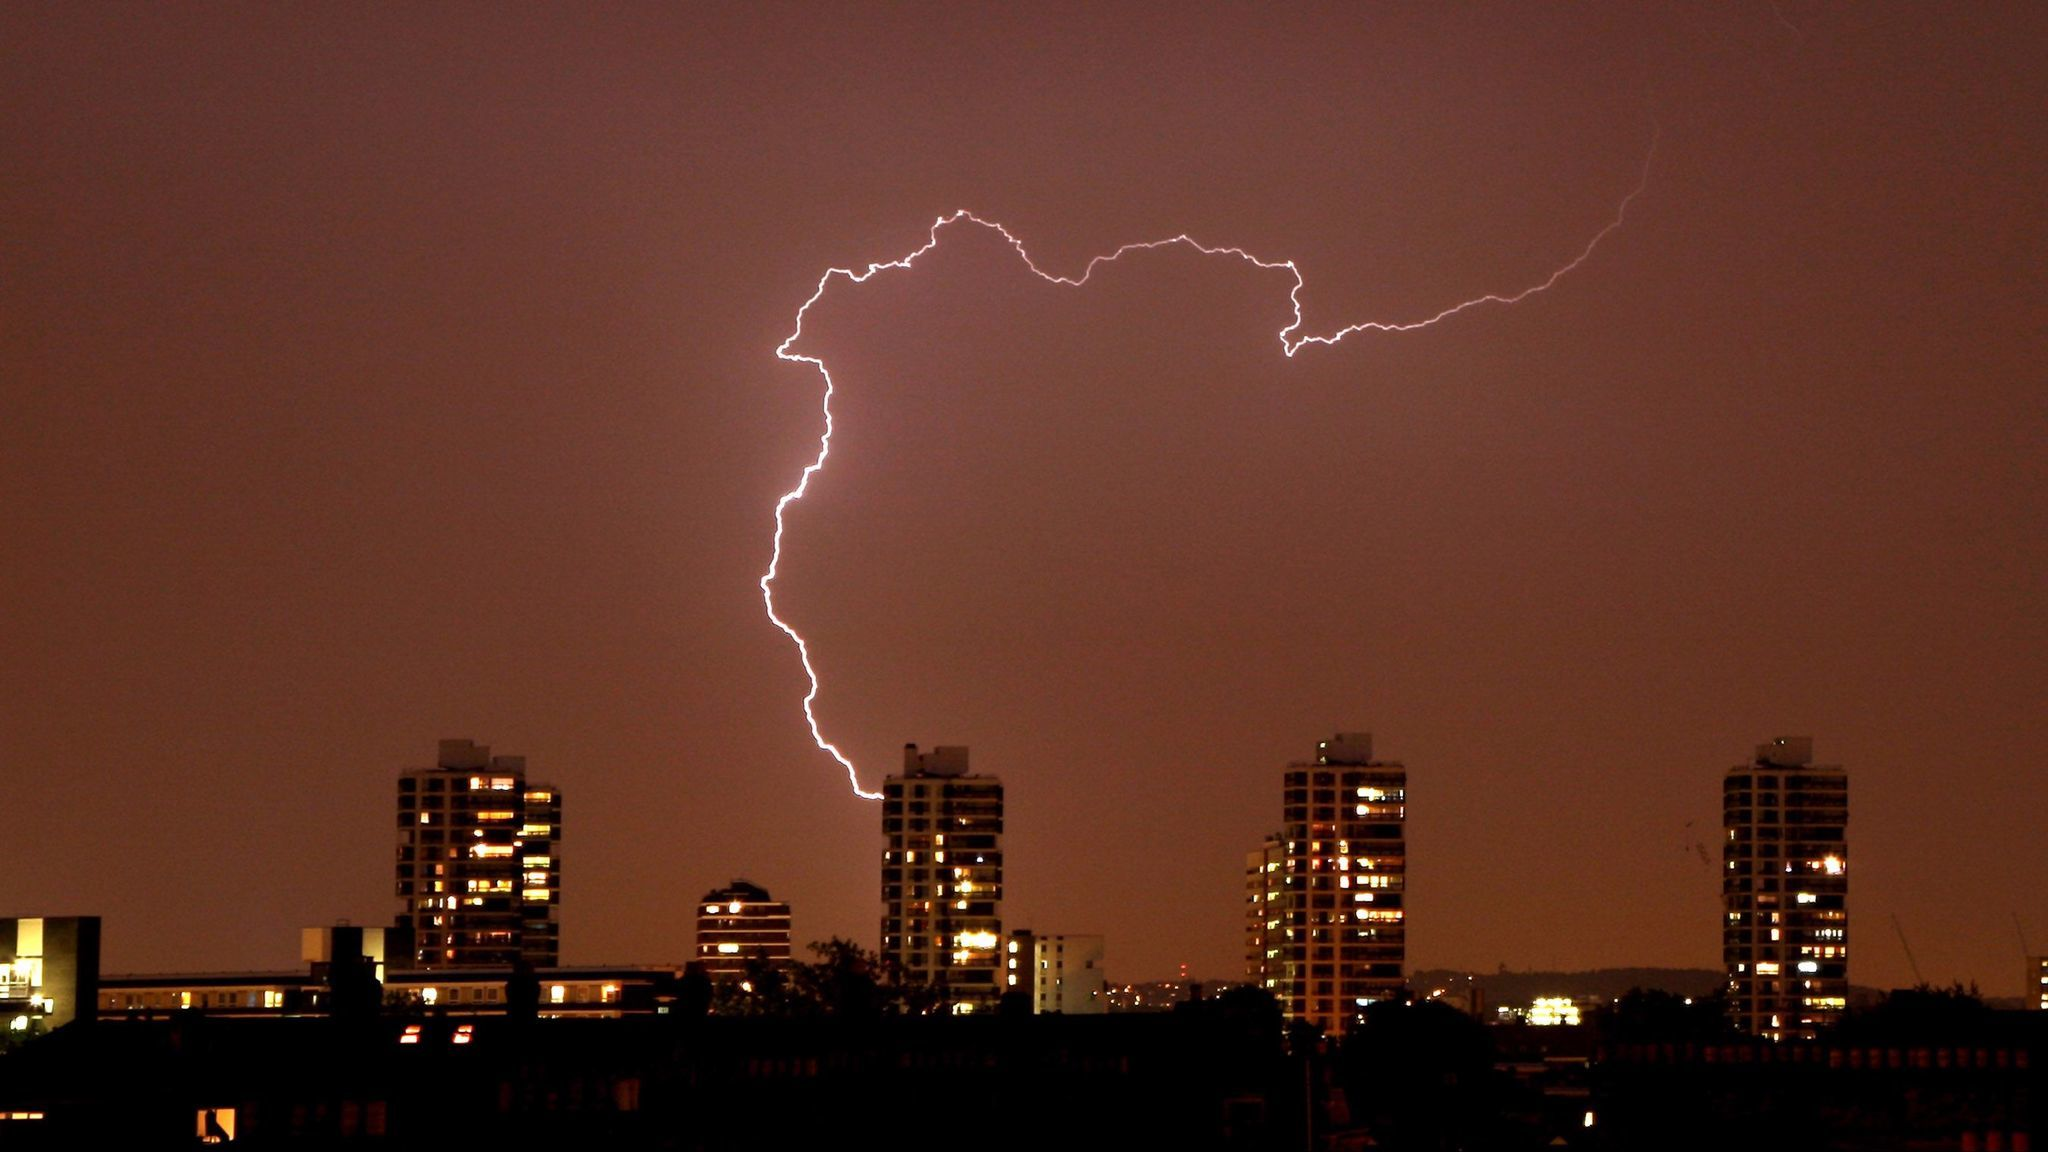 Lightning Strikes Over London Skyline